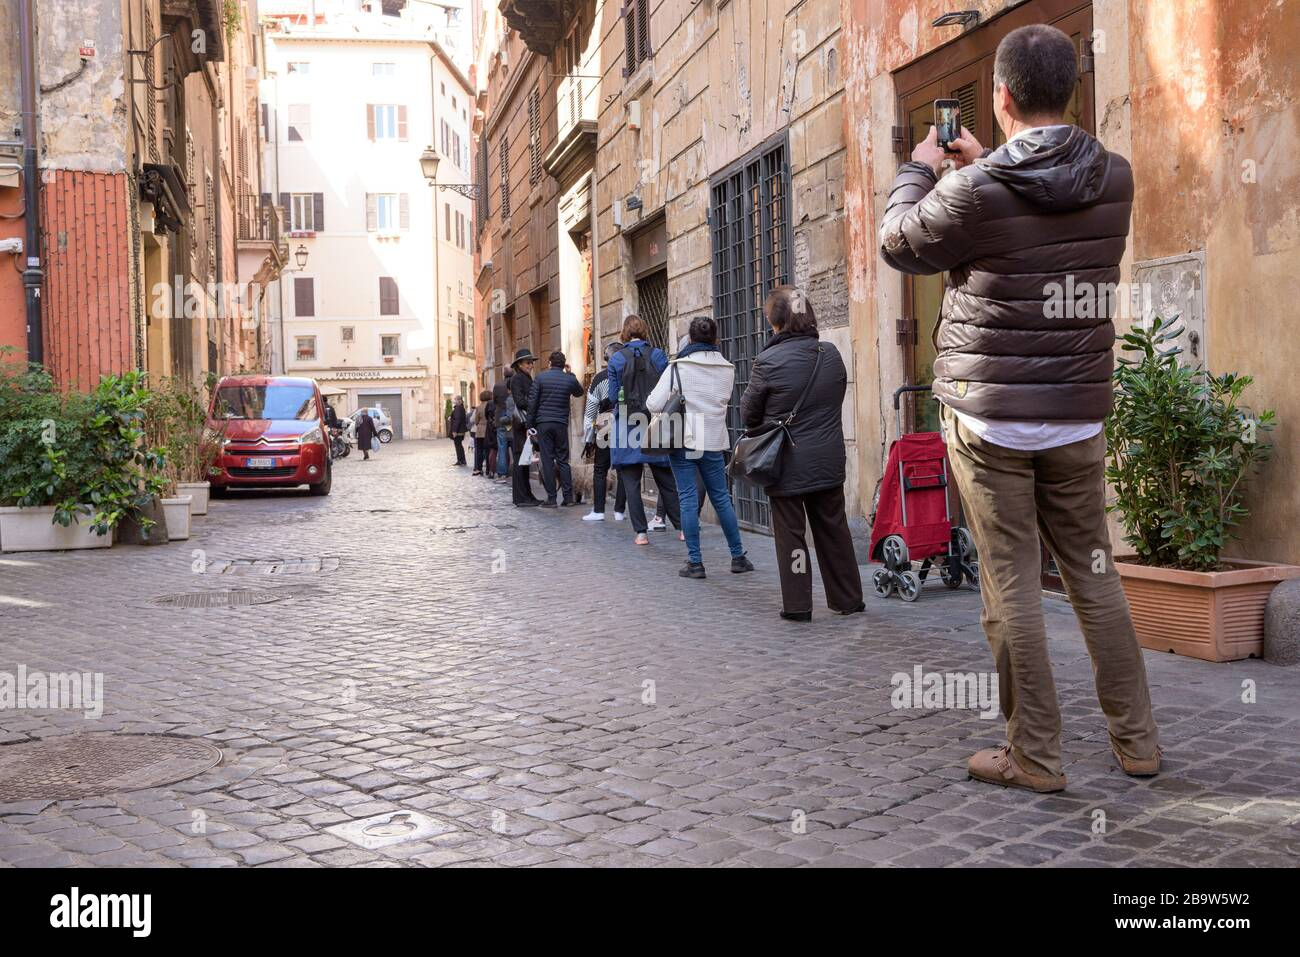 ROME, ITALY - 12 March 2020: Customers line up outside of a local supermarket in central Rome, Italy. Only a few persons can enter at a time, and shal Stock Photo